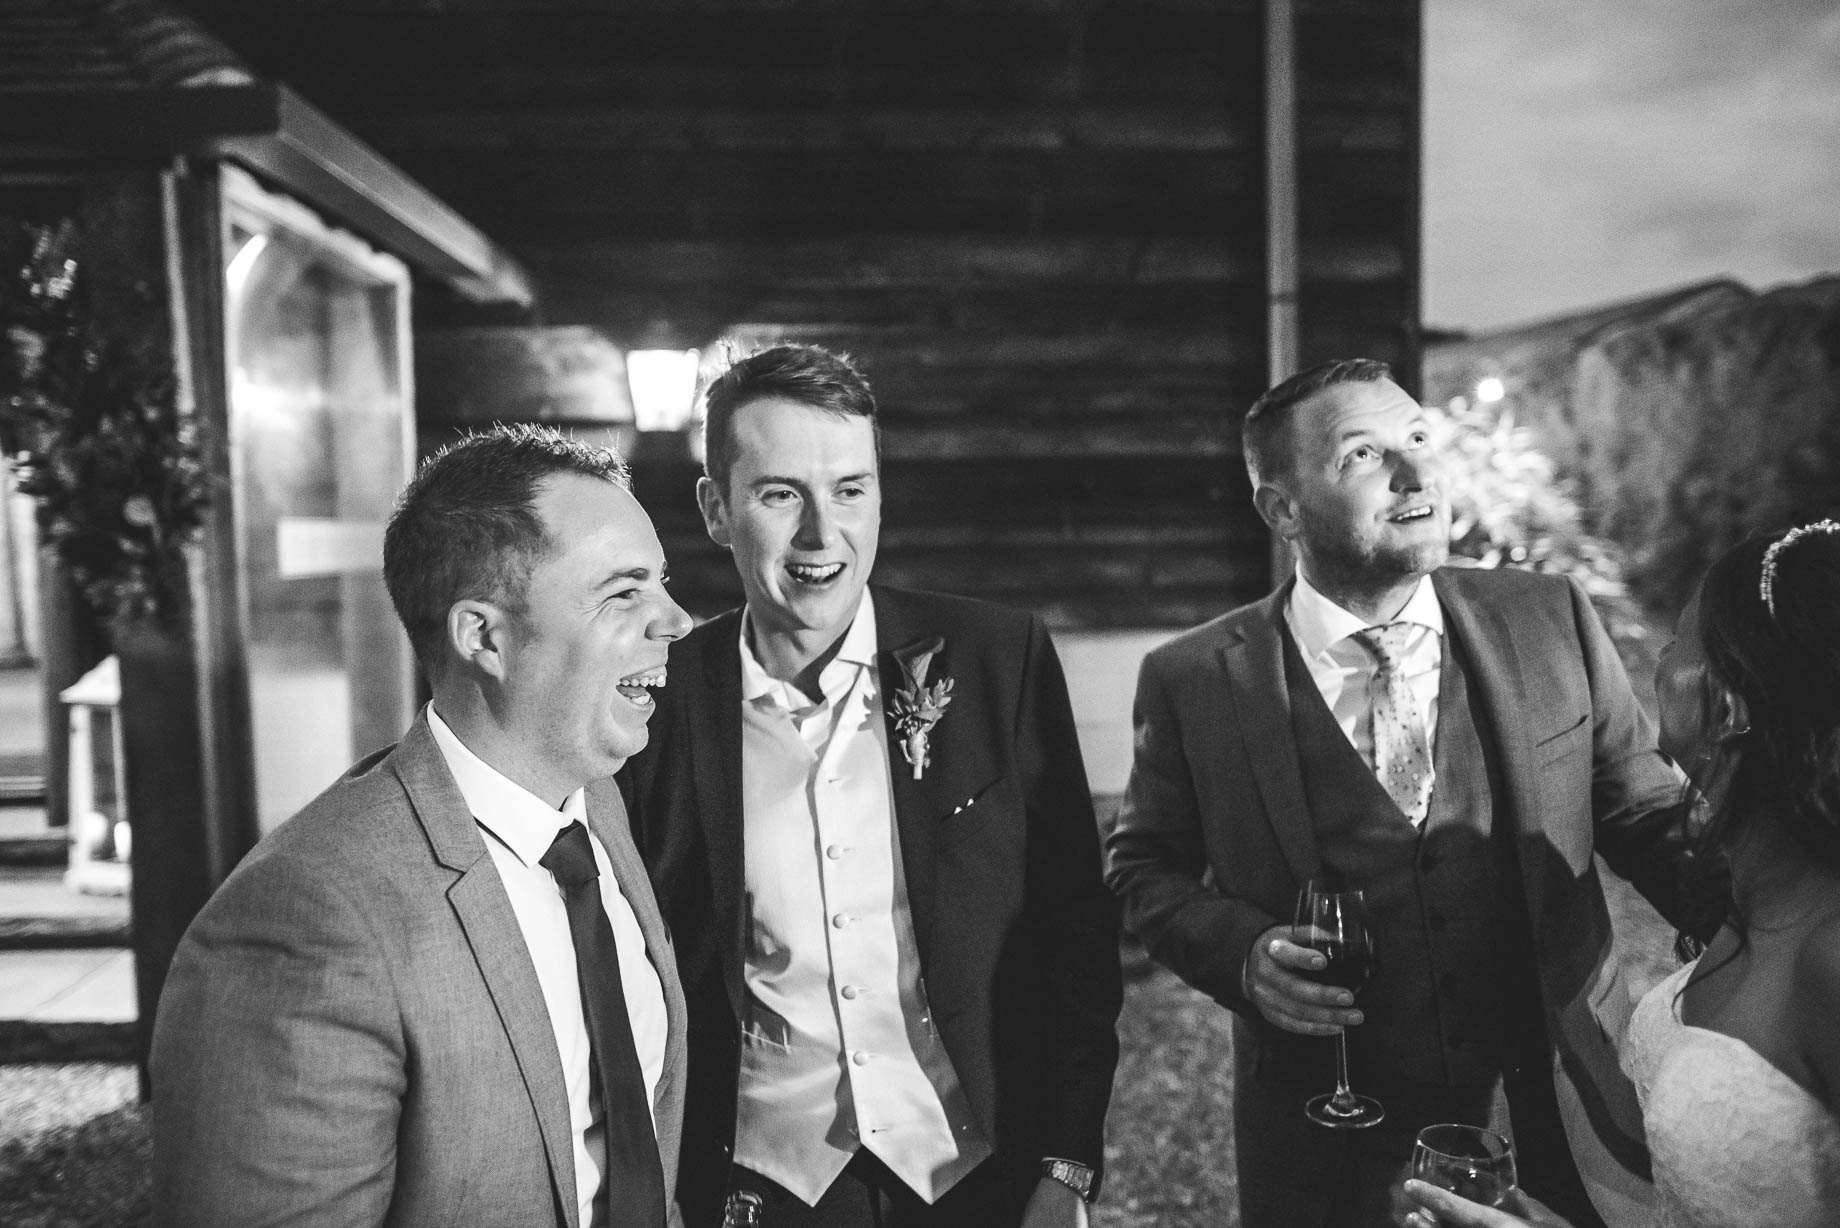 Gate Street Barn wedding photography - Guy Collier - Claire and Andy (170 of 192)